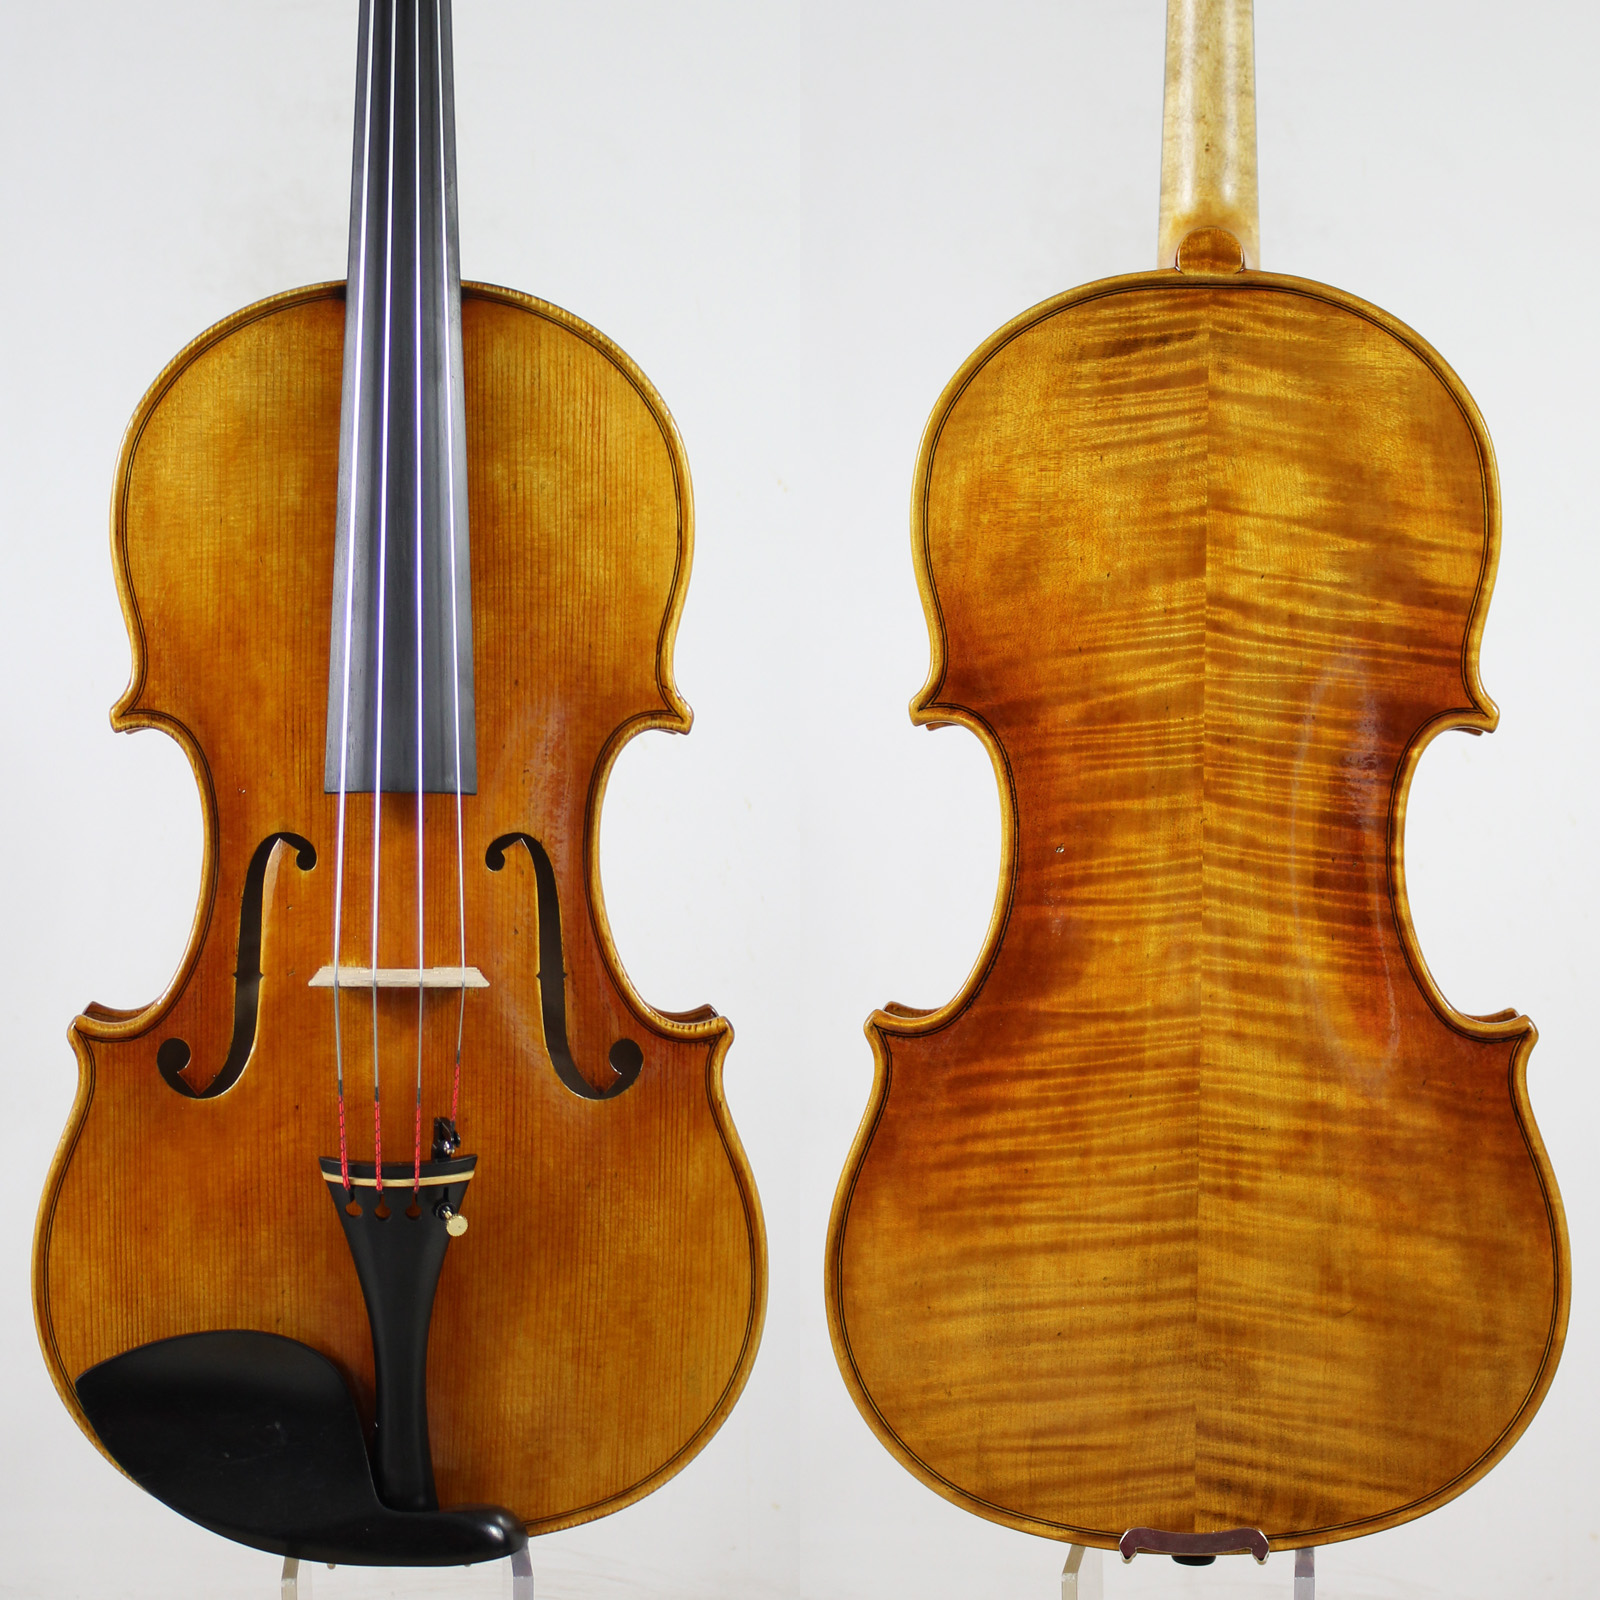 "G.B.Guadagnini 1785 Copy! 15.75"" Viola Copy, Professional Level!Antique Oil Varnish!"